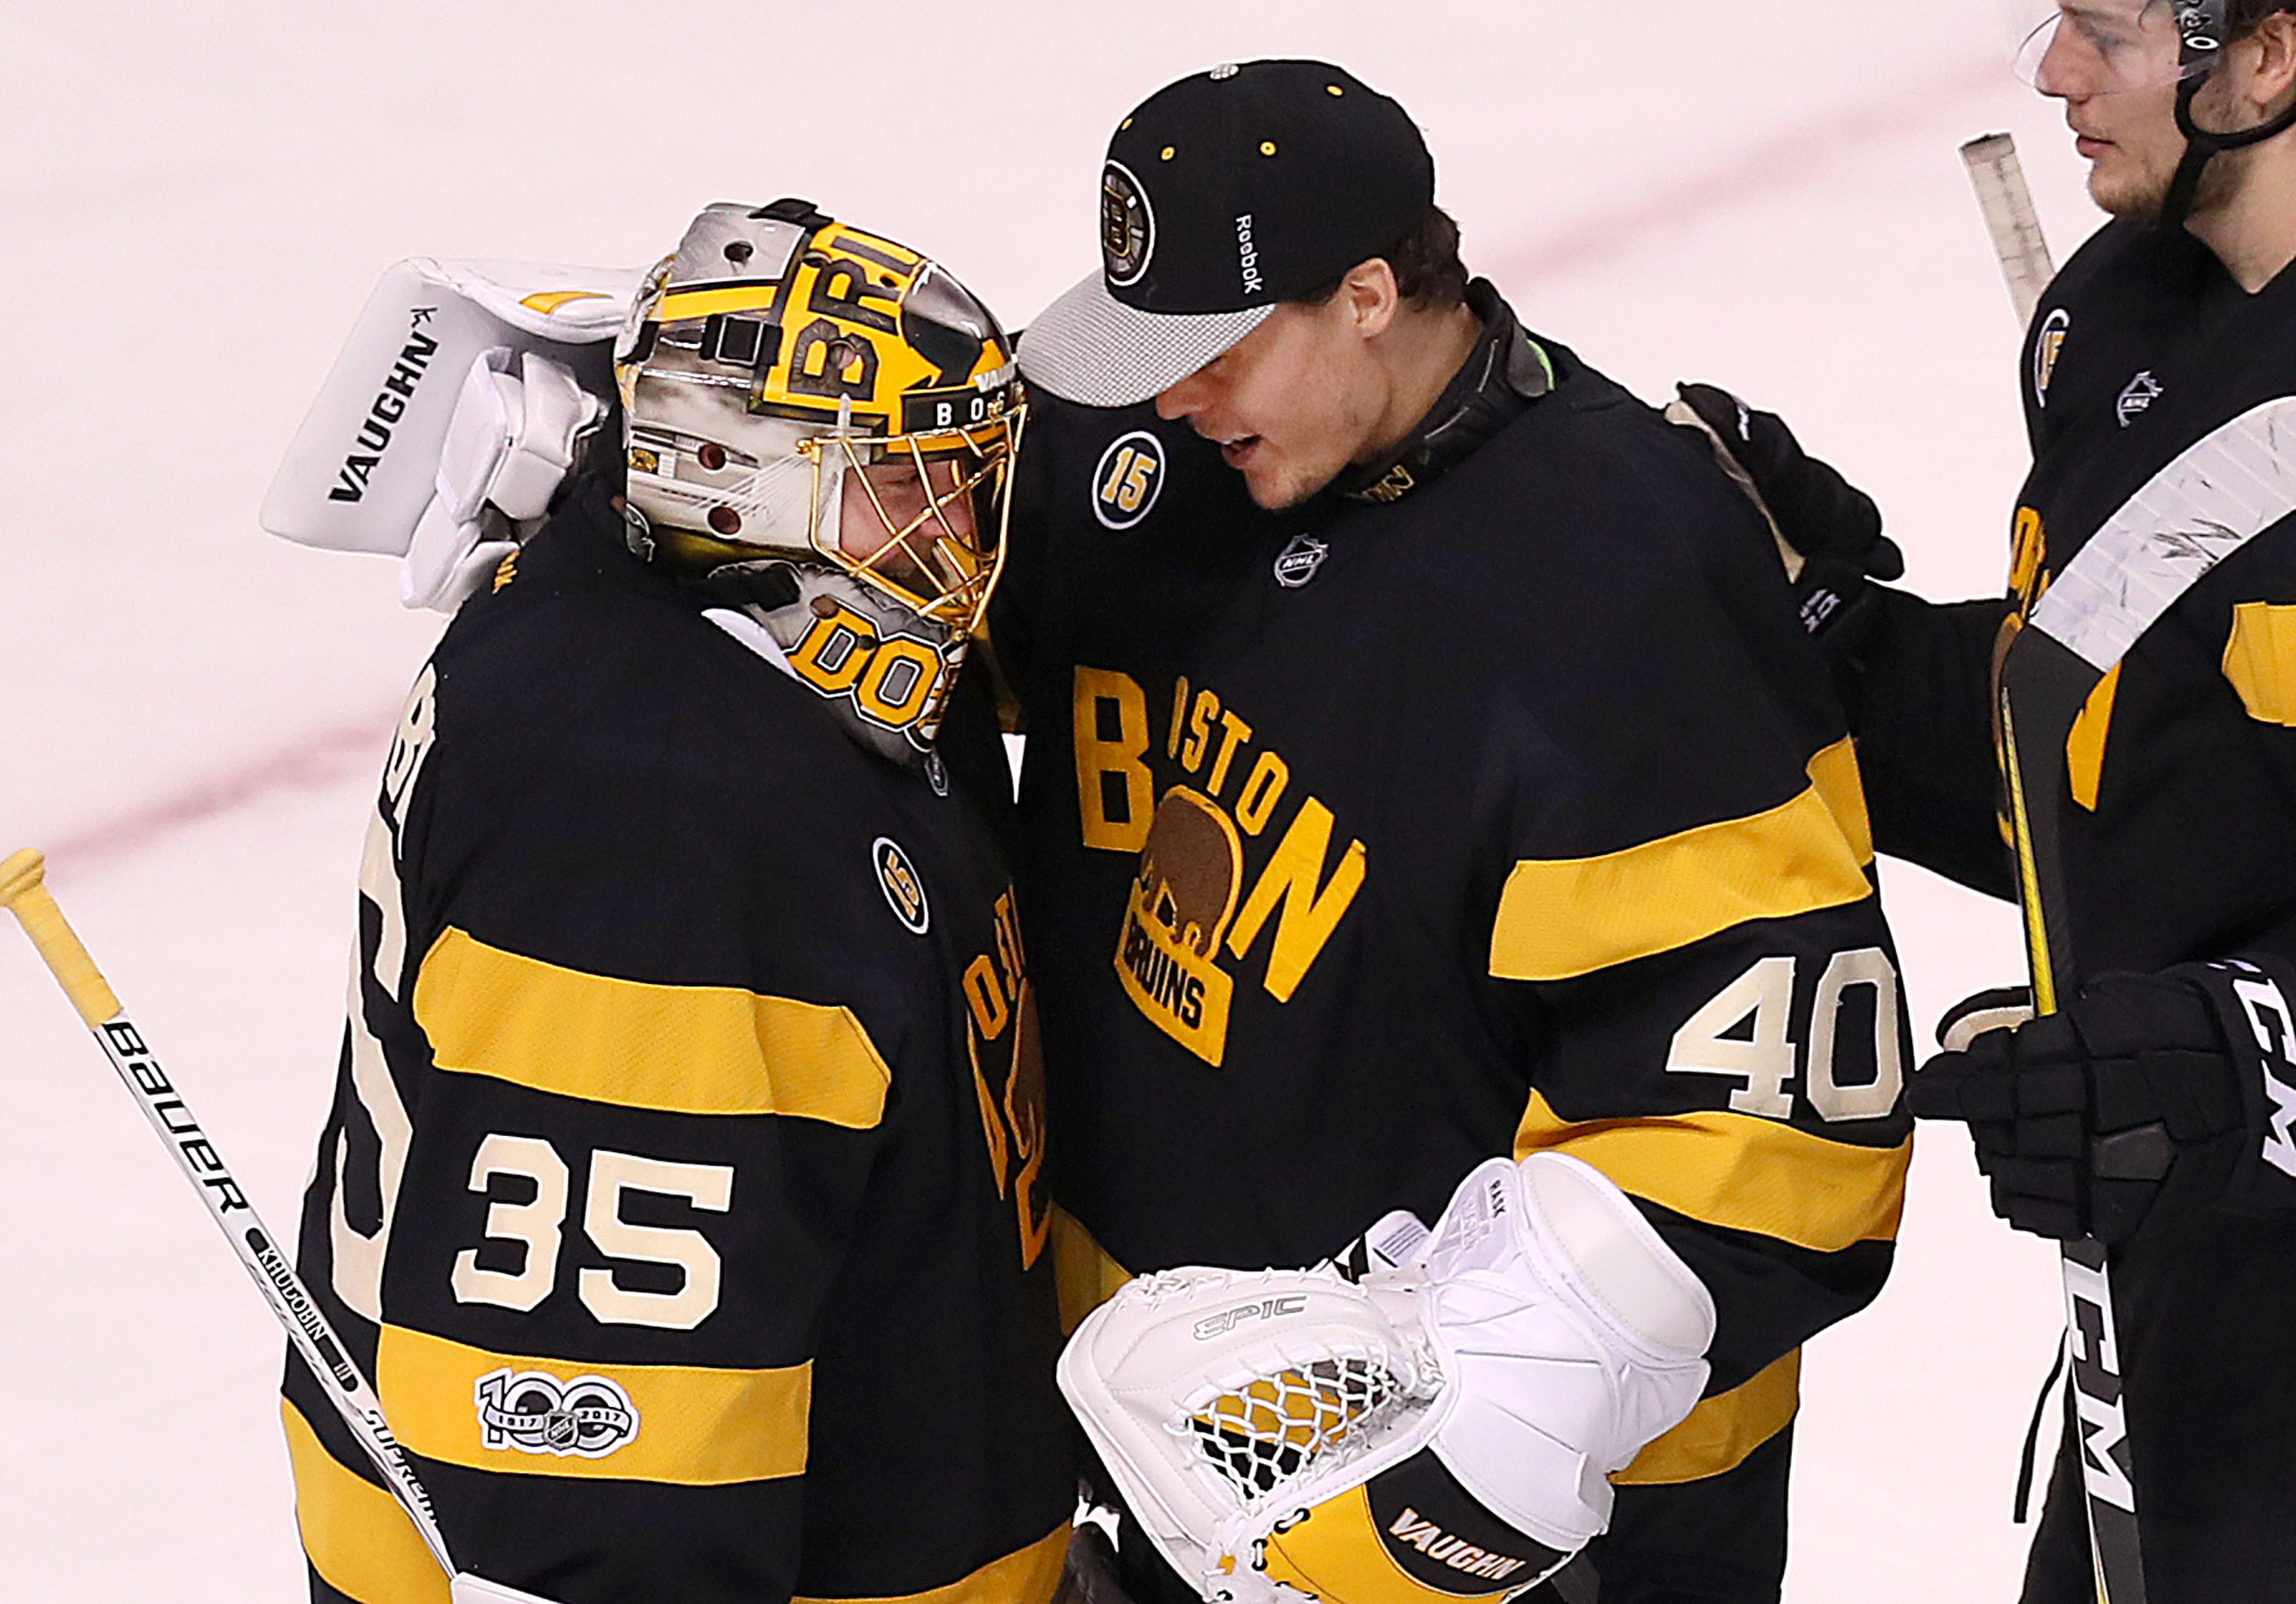 Tuukka Rask named NHL First Star of the Month